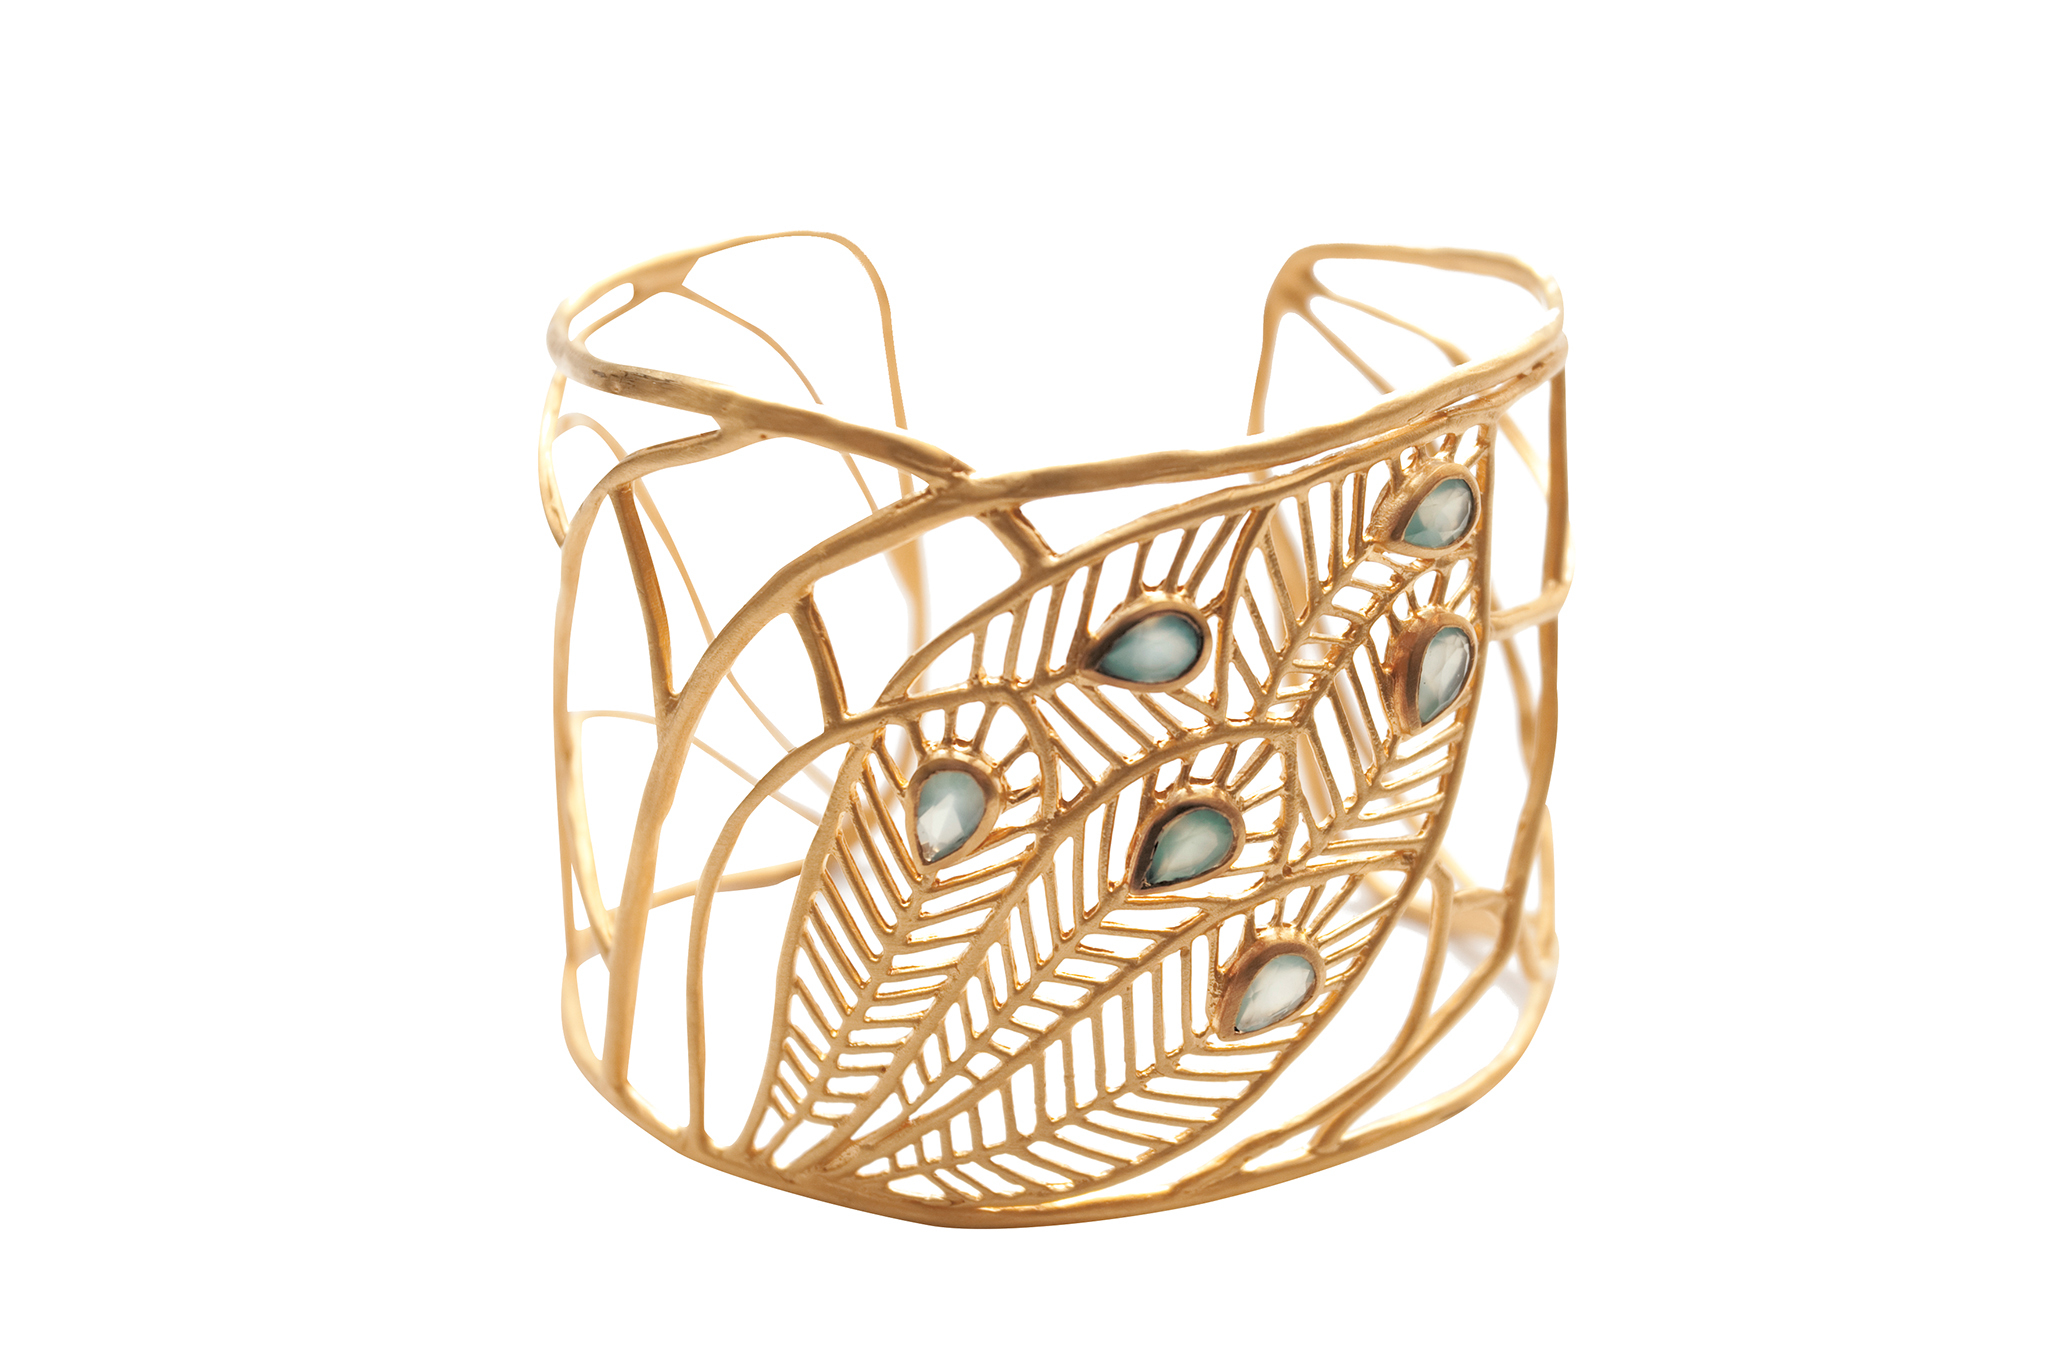 Satya agate-and-gold cuff, $128